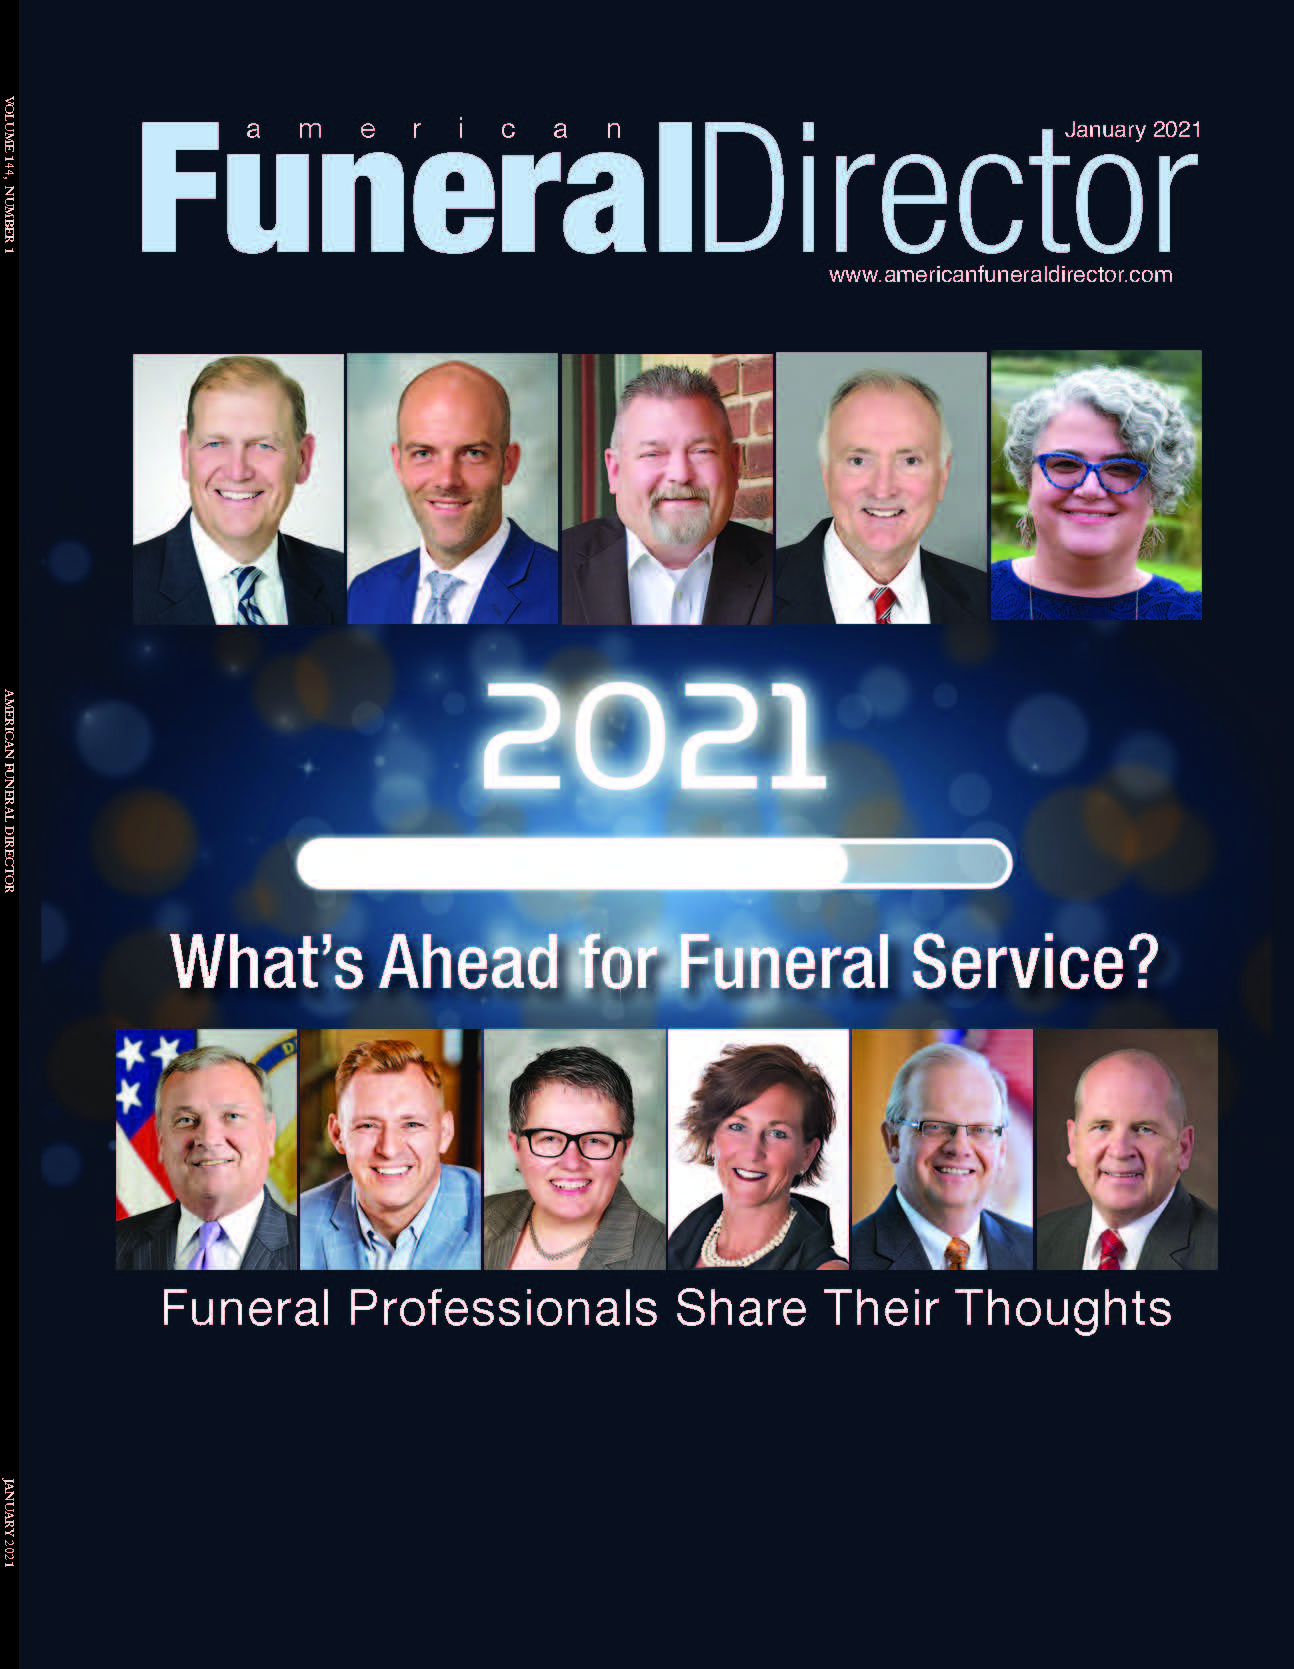 Terry School American Funeral Director January 2021_Page_1